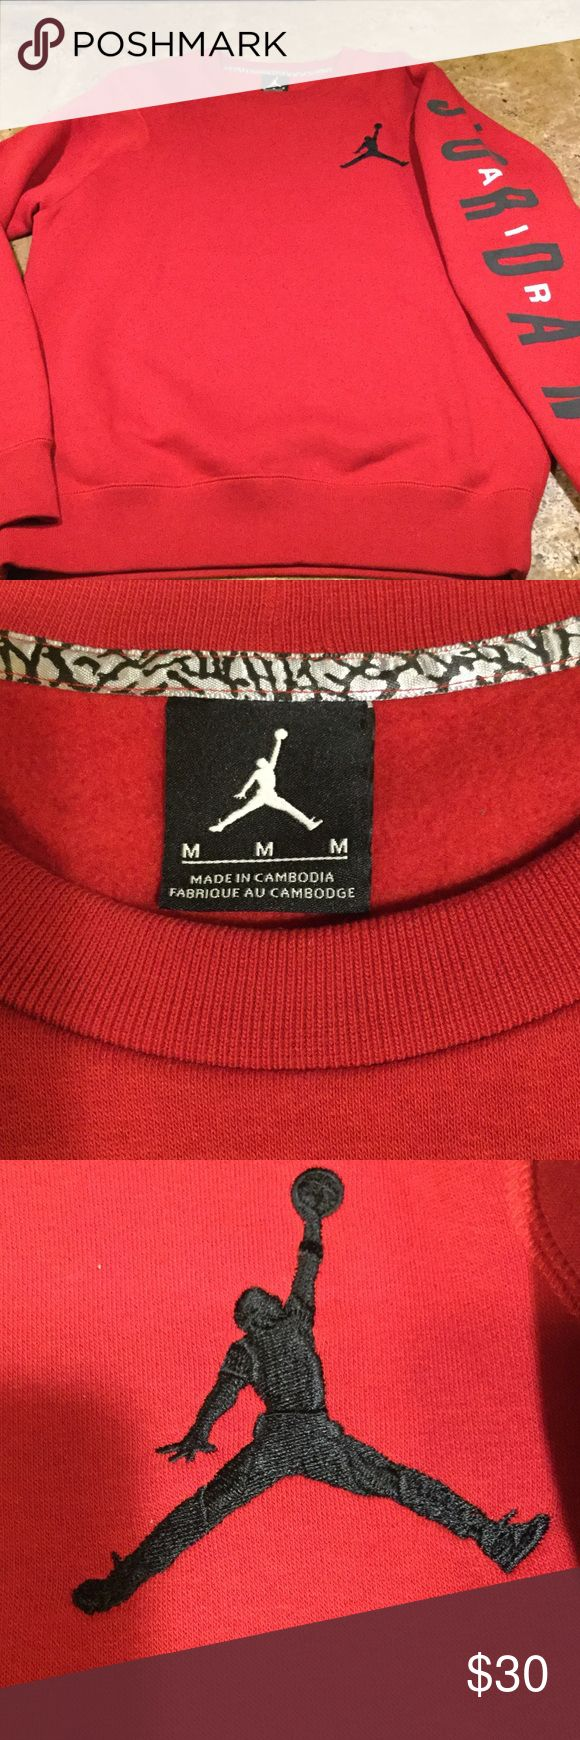 Jordan sweatshirts, excellent condition. Worn 1X Nike Jordan sweatshirt Jordan Shirts Sweatshirts & Hoodies